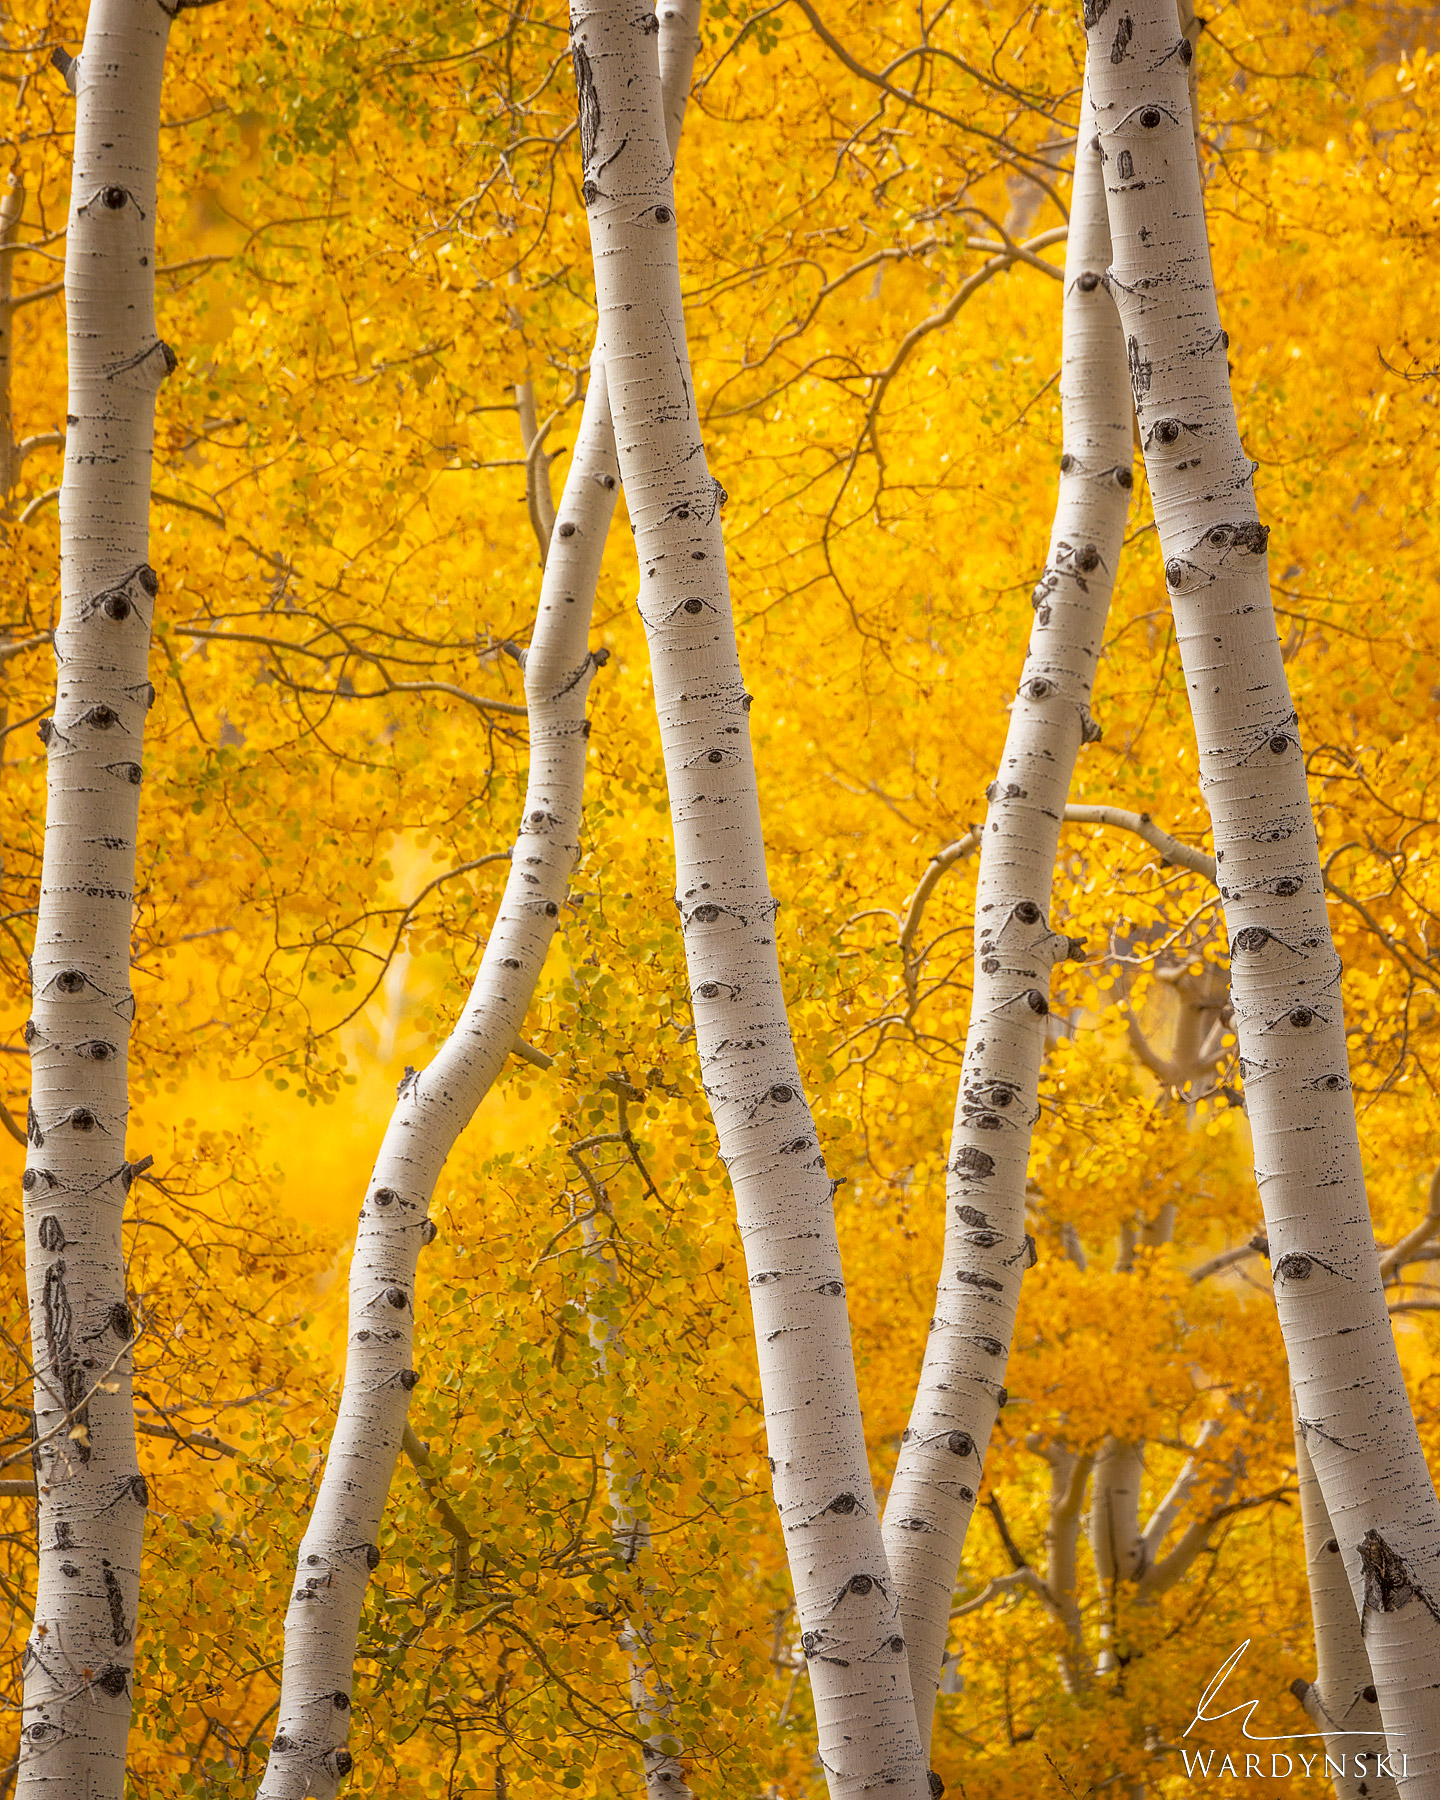 Fine Art Print | Limited Edition of 50 There are few places in the west that put on a better fall display than the mountains...